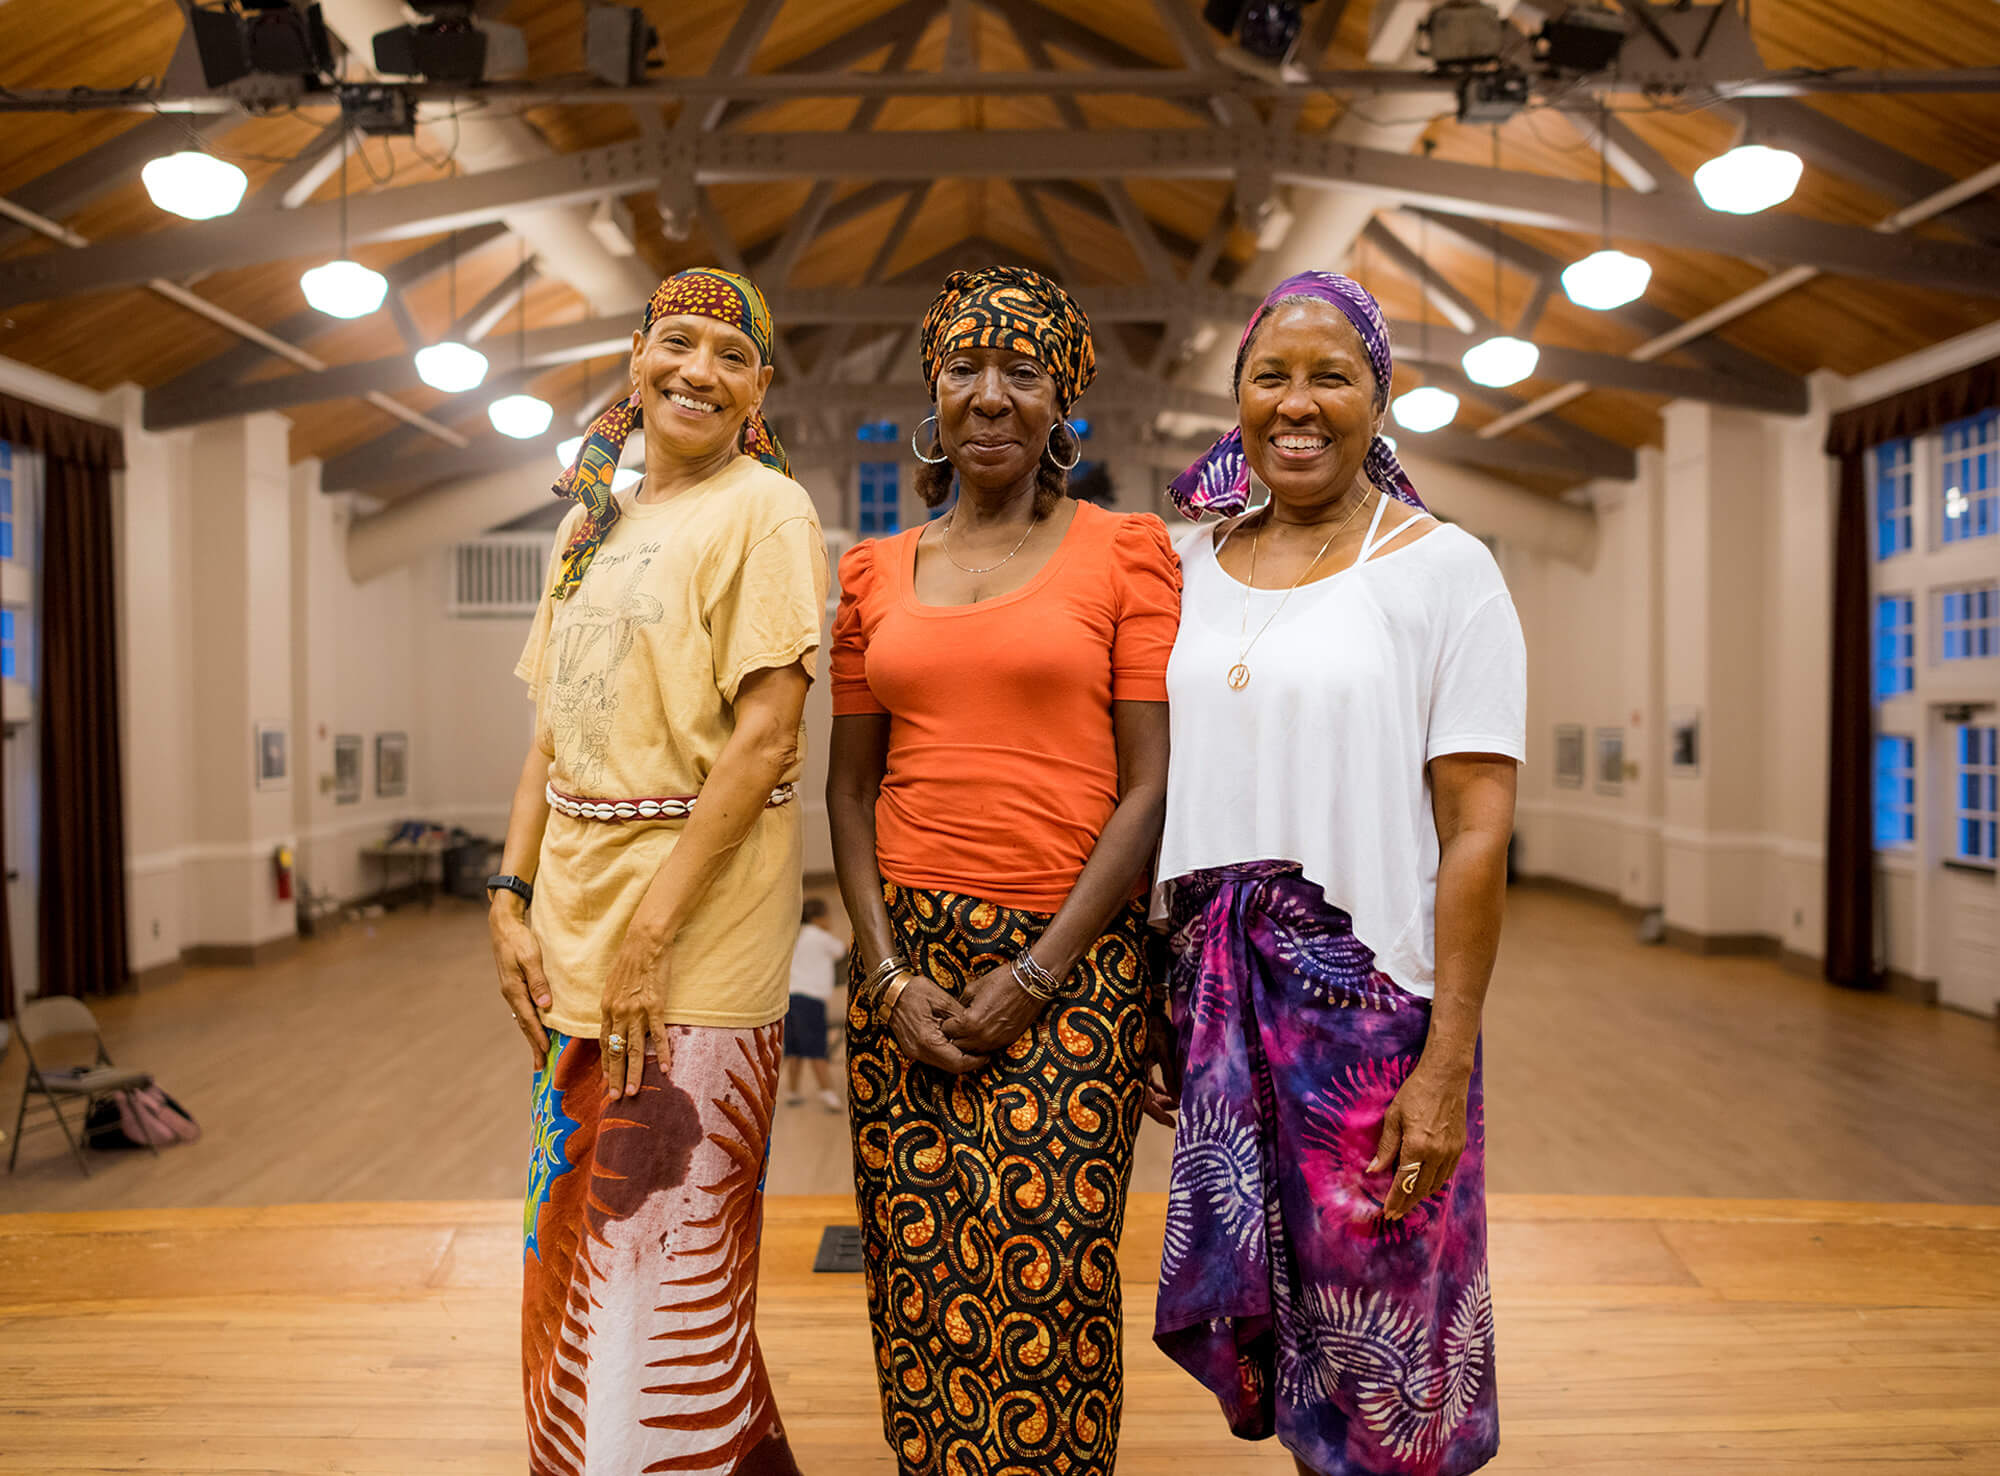 The Uhuru African Dancers pose for a portrait during rehearsal at the Clarkston Community Center. Uhuru is the longest-running African dance company in the Atlanta area.